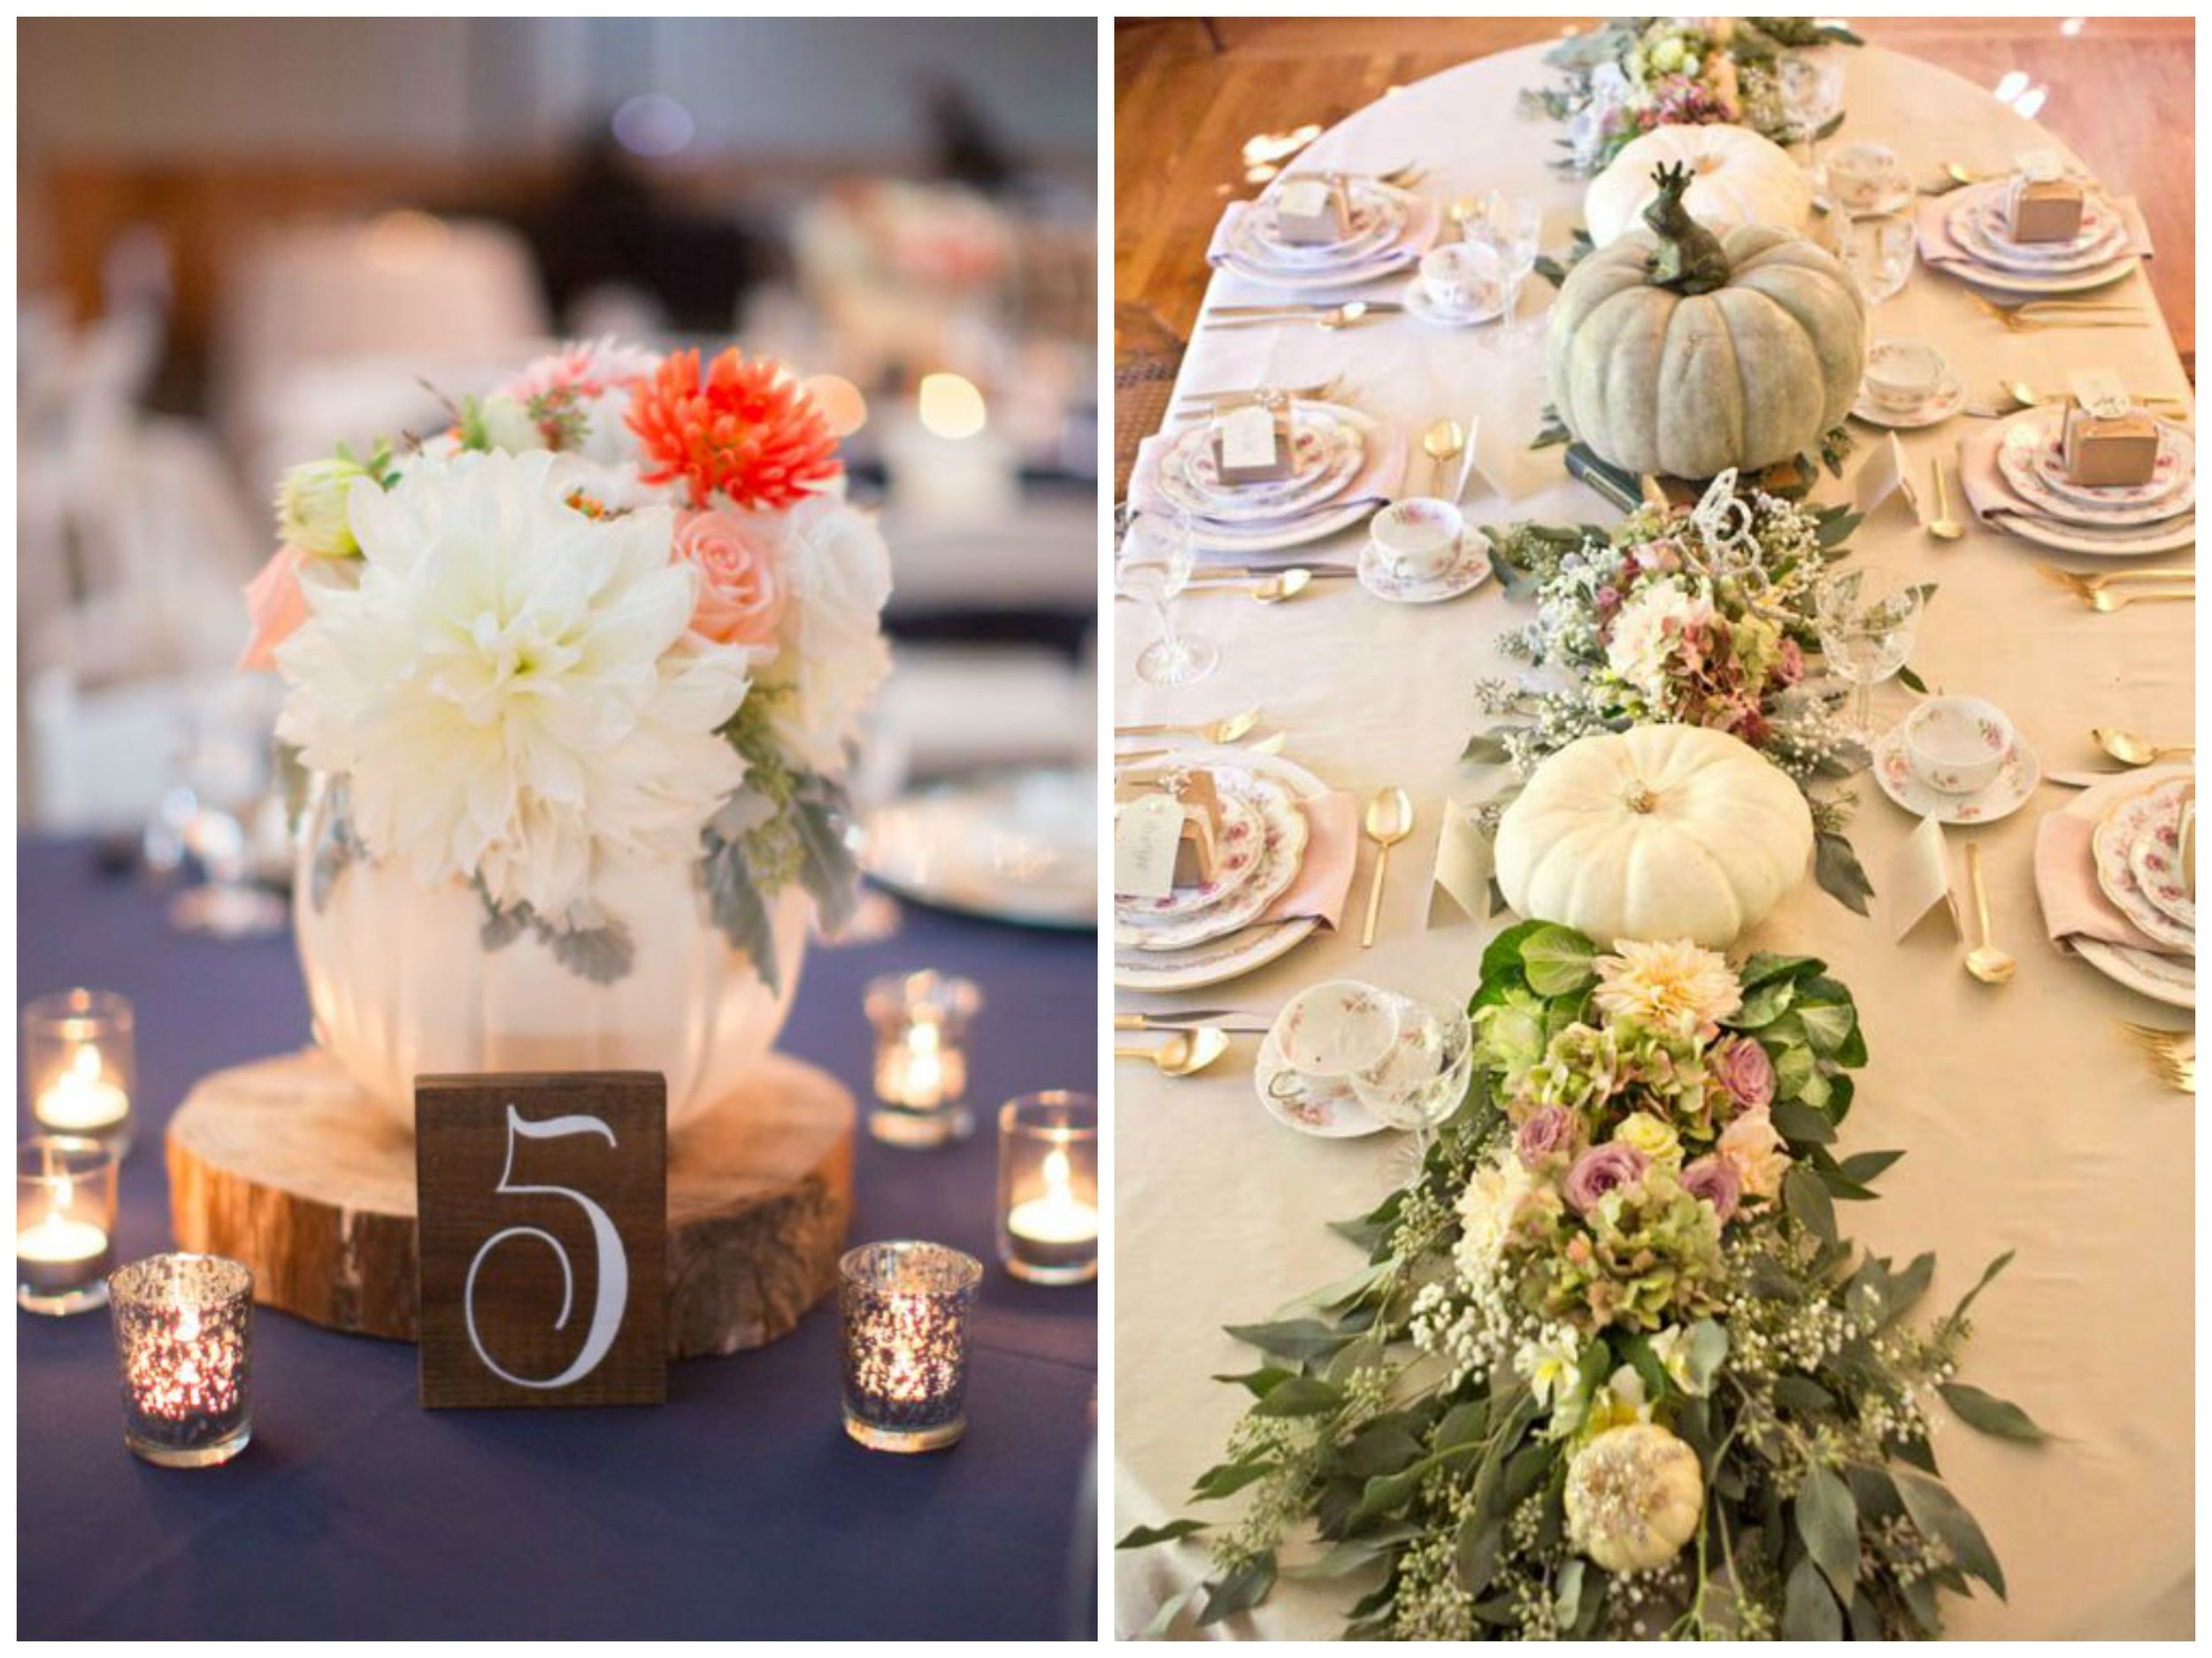 Rustic Wedding Chic ;  Happy Wedd . Even if your wedding decor doesn't look fall-ish at all, you can use pumpkins to make it instantly more appropriate for autumn! White or painted pumpkins paired with pastels? I LOVE this look.